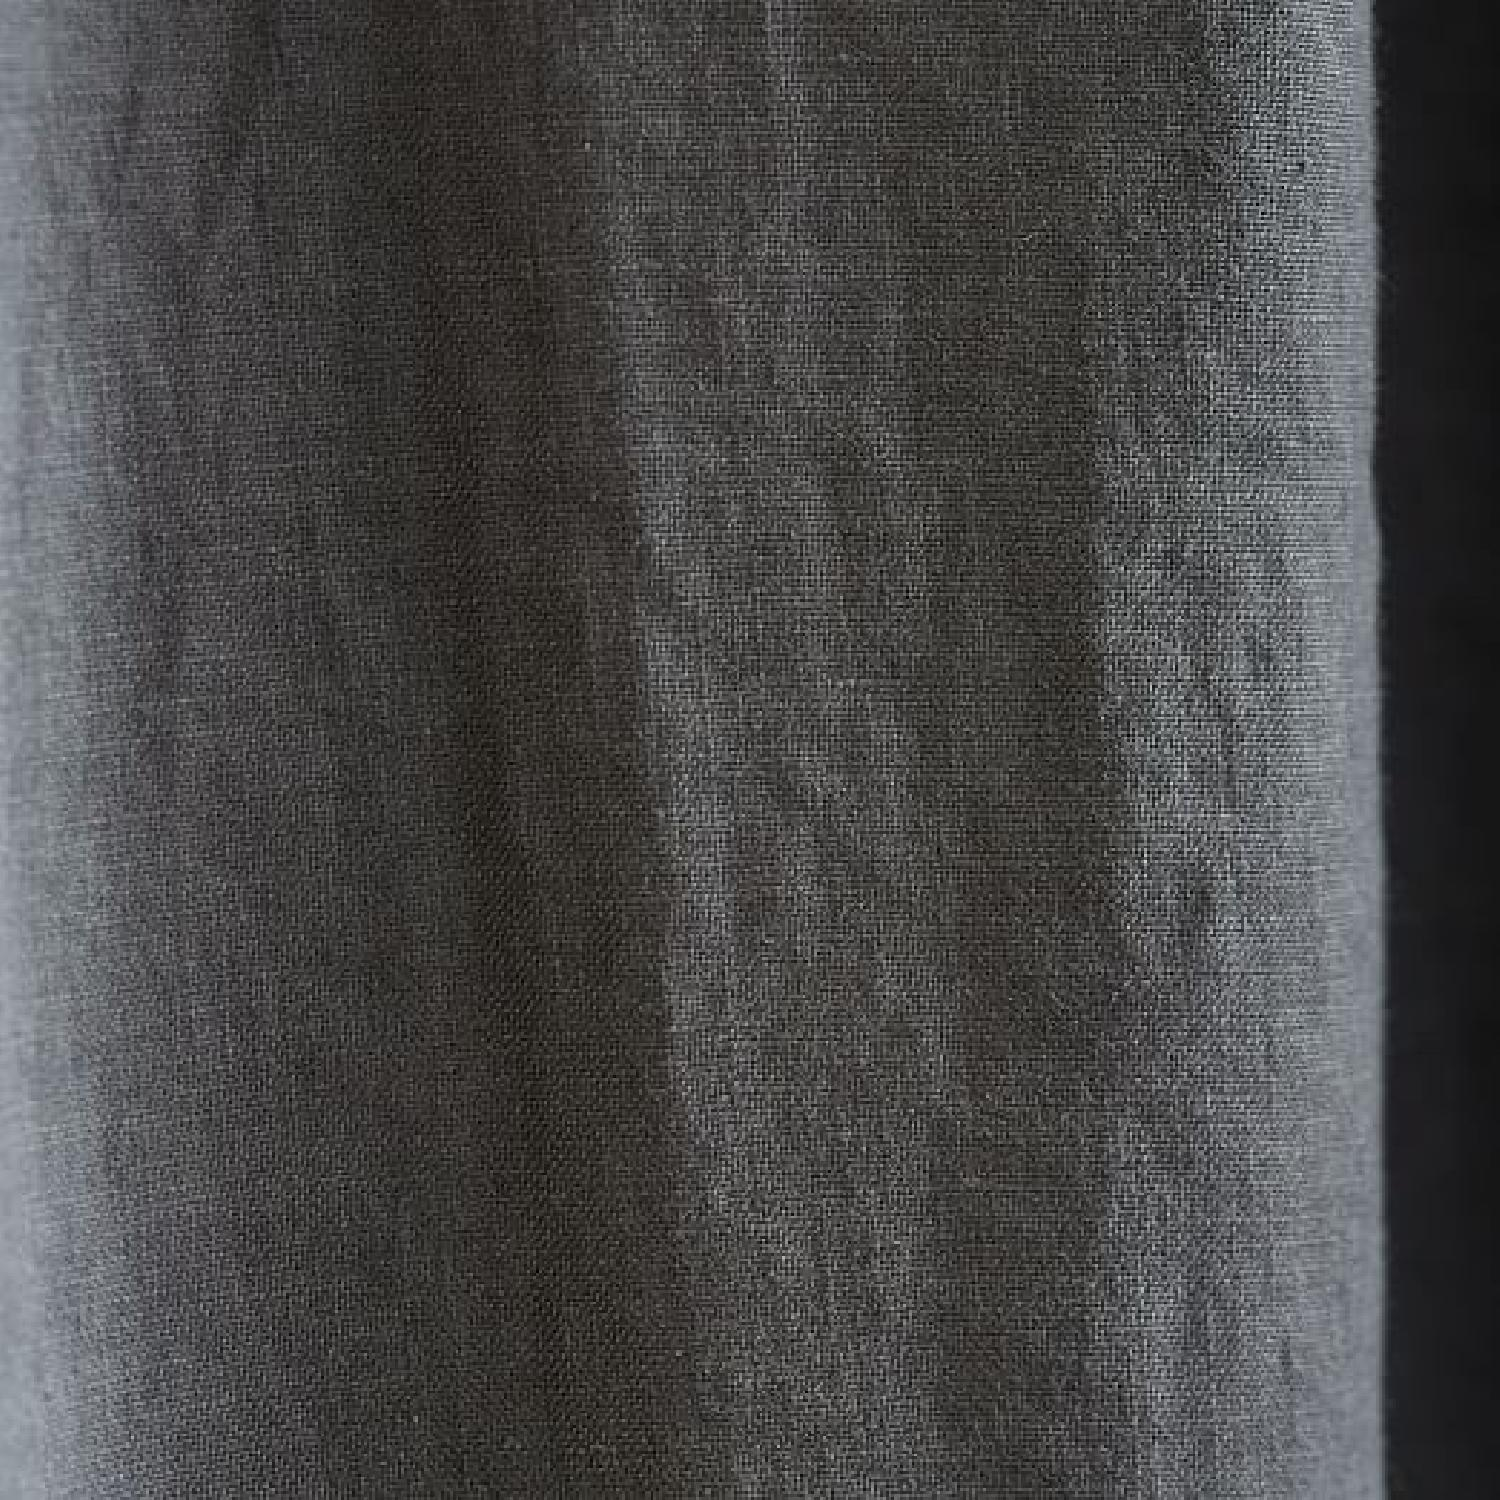 West Elm Belgian Linen Blackout Curtains w/ CB2 Curtain Rod-2